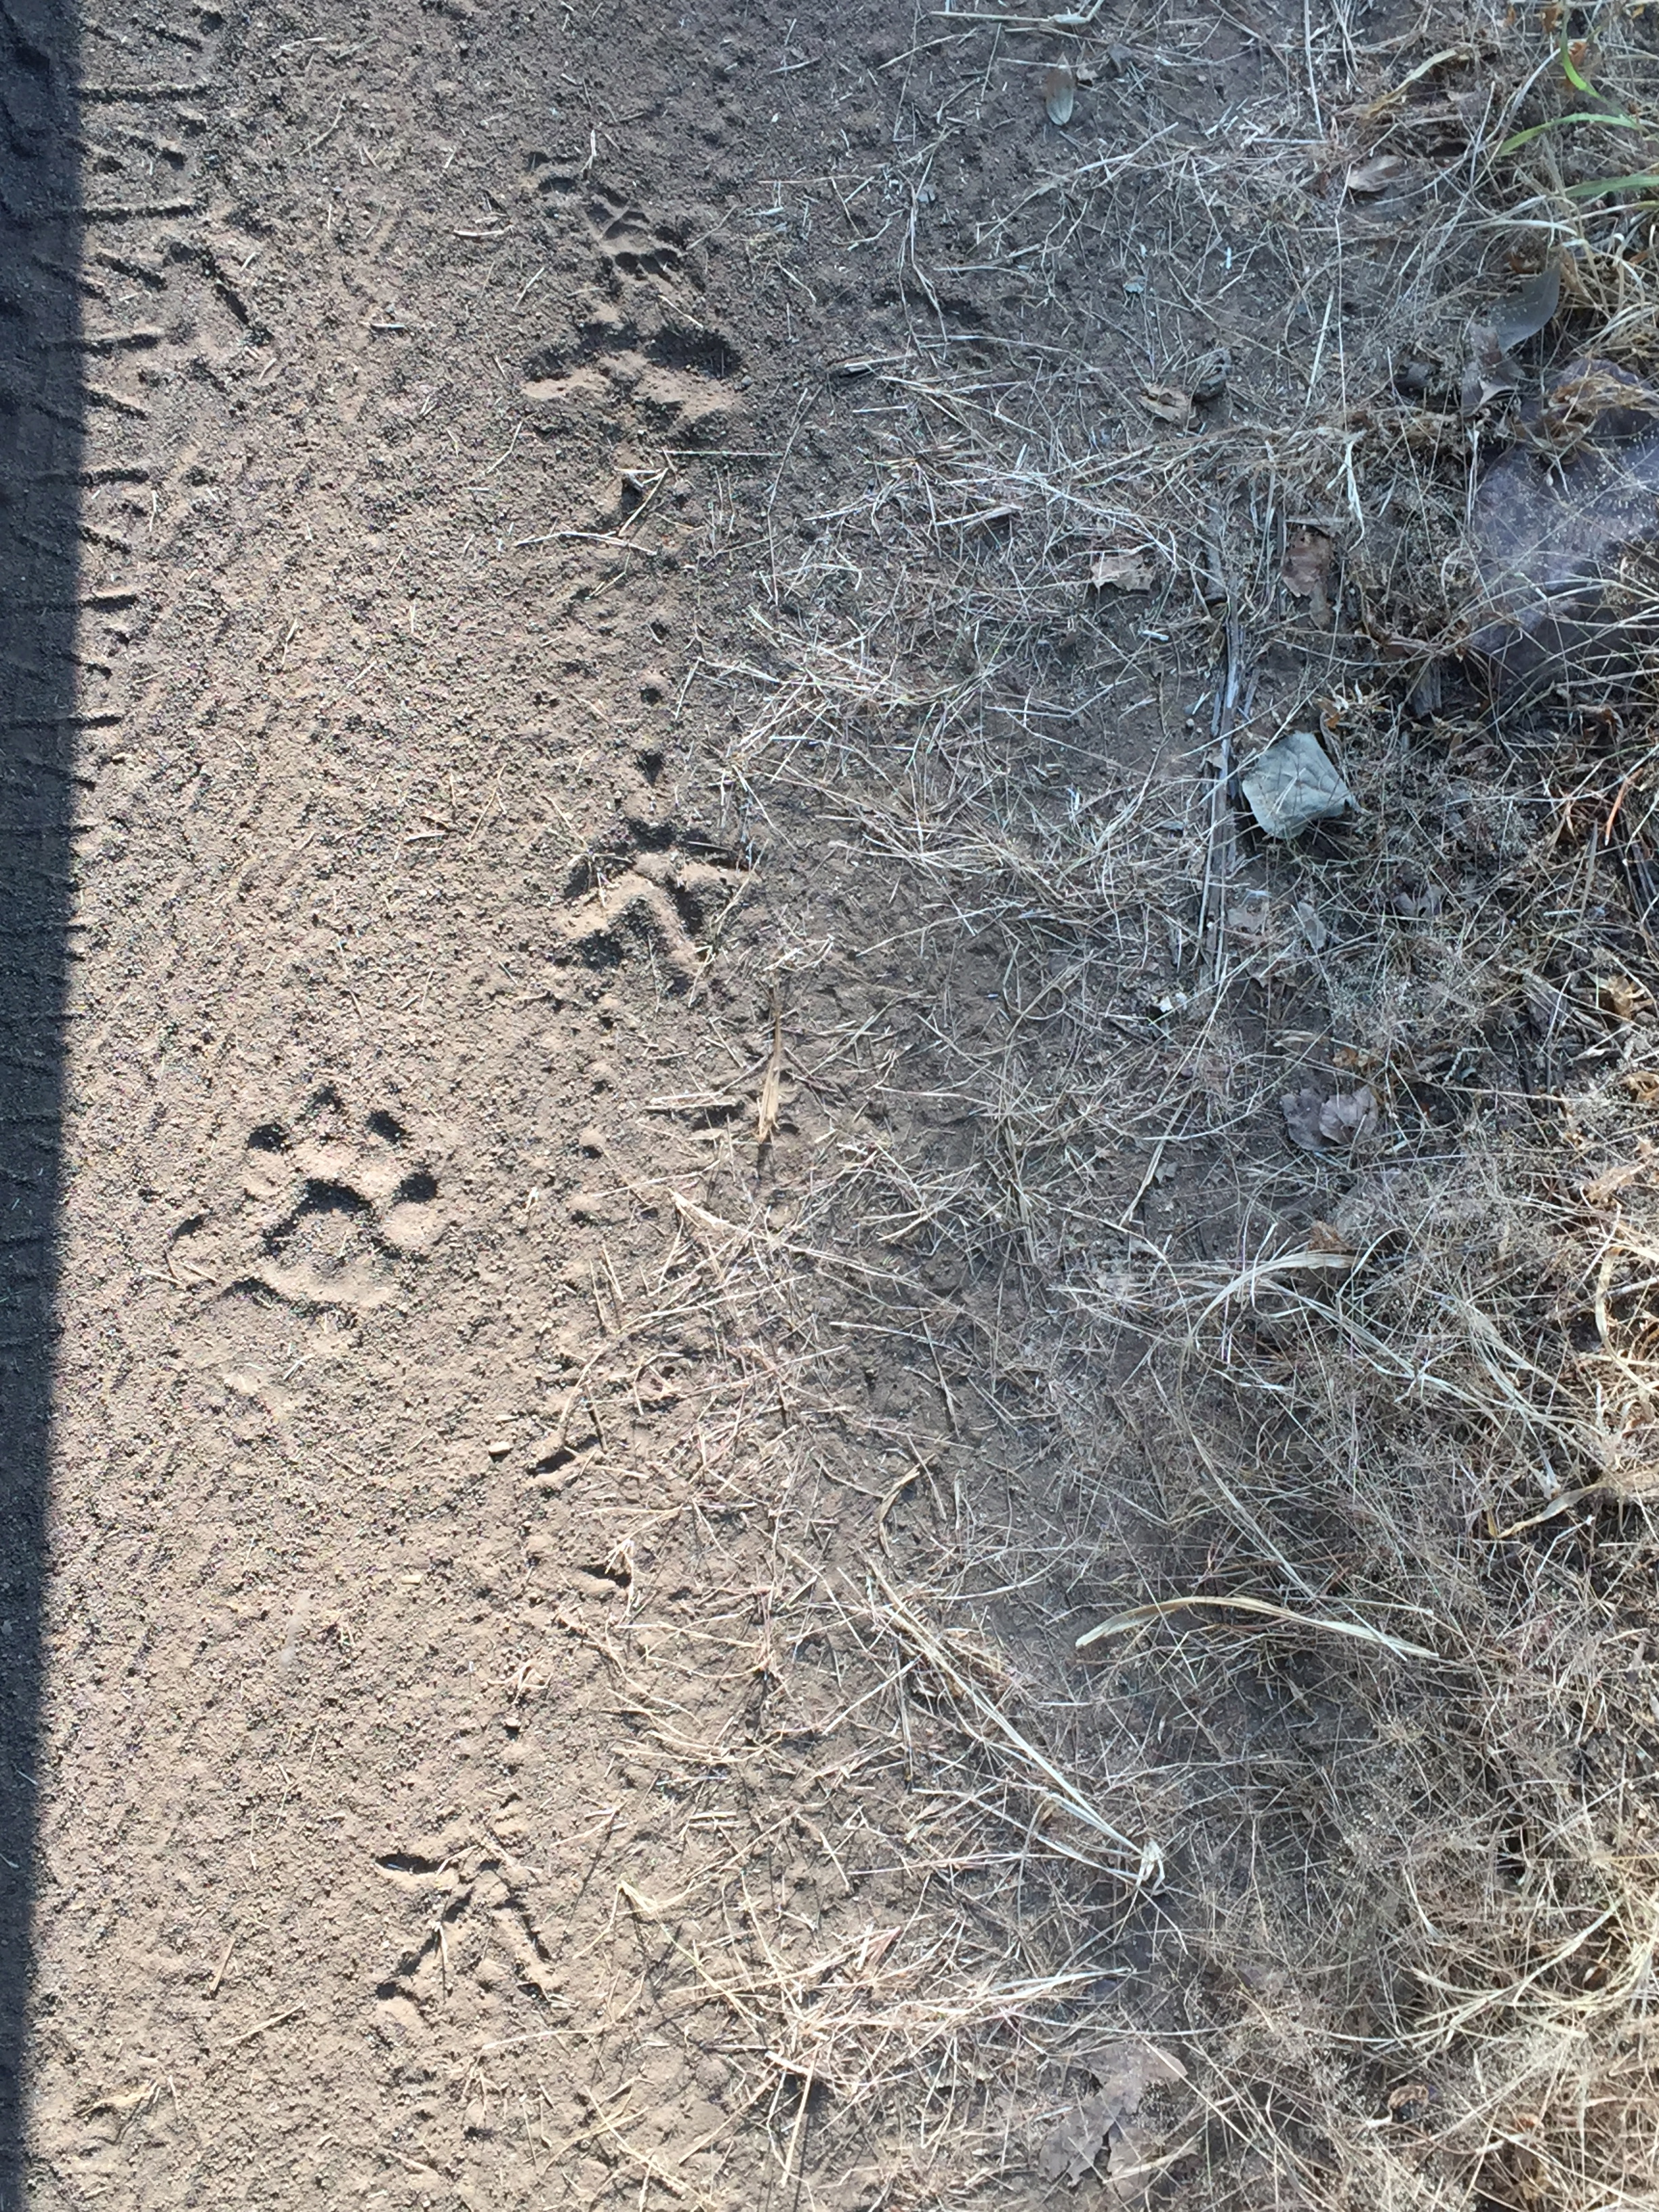 After about an hour in the park, our guide spotted fresh tiger tracks on the road.